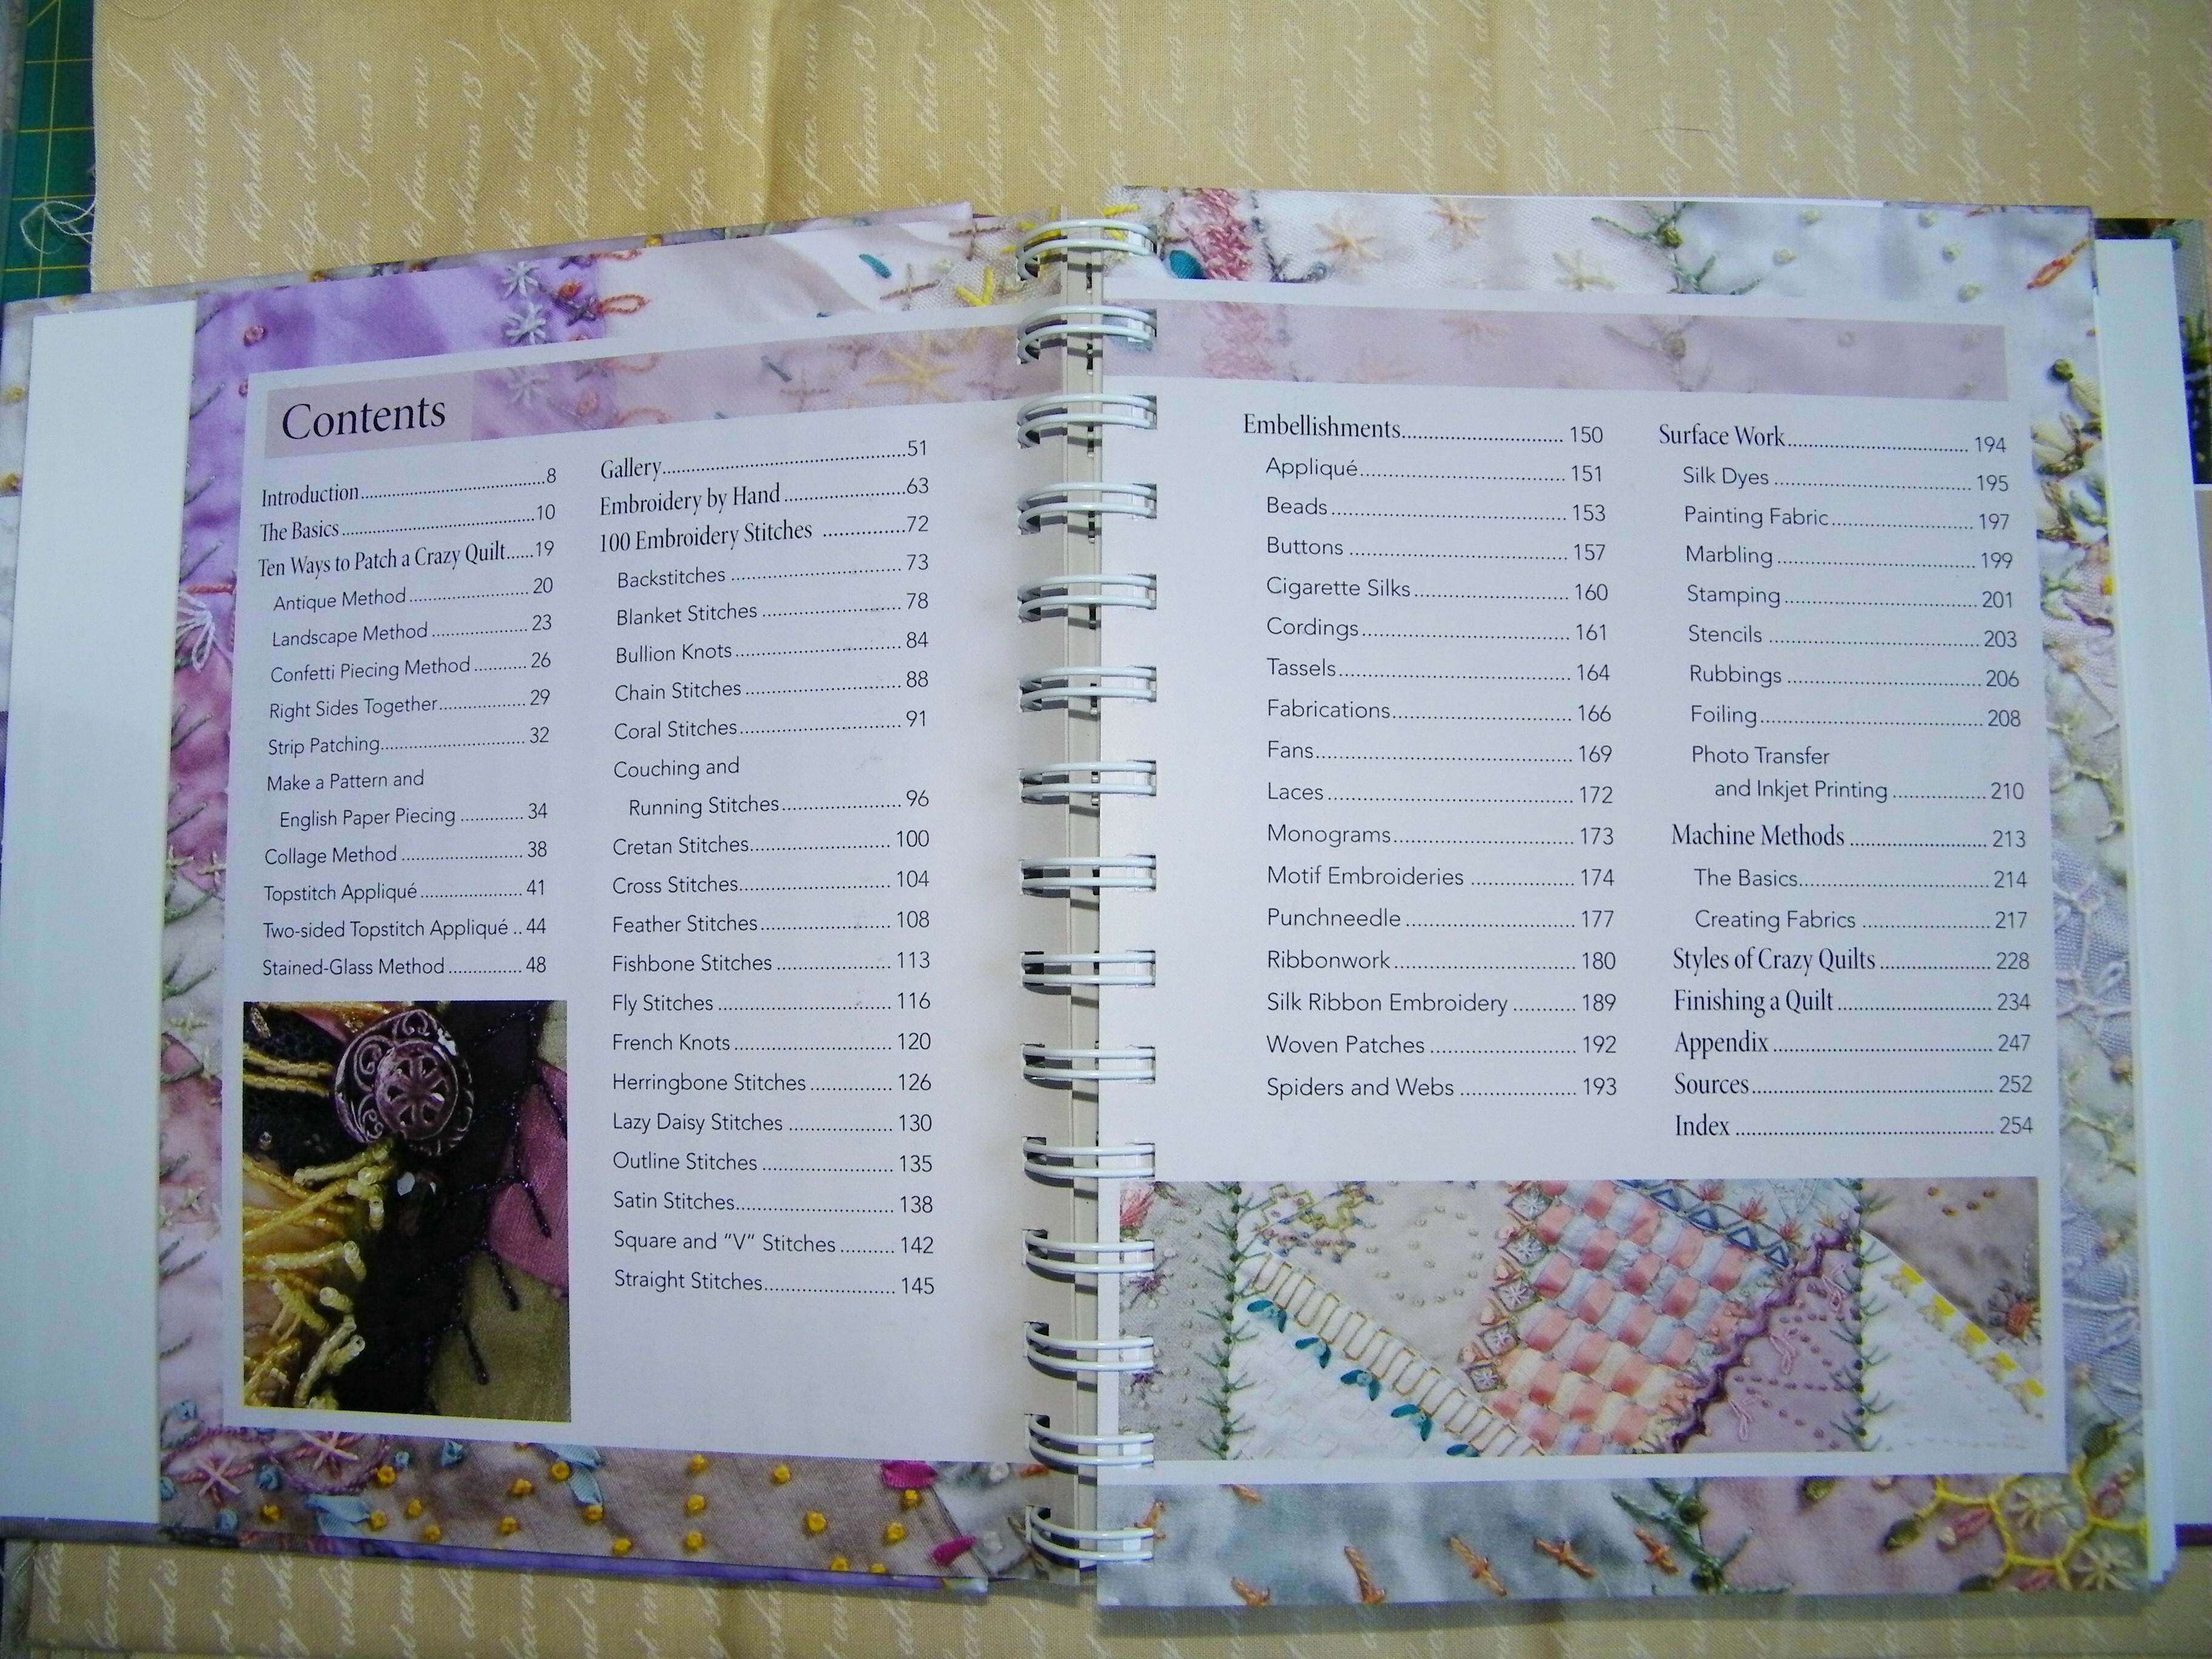 The Complete Guide Crazy Quilting